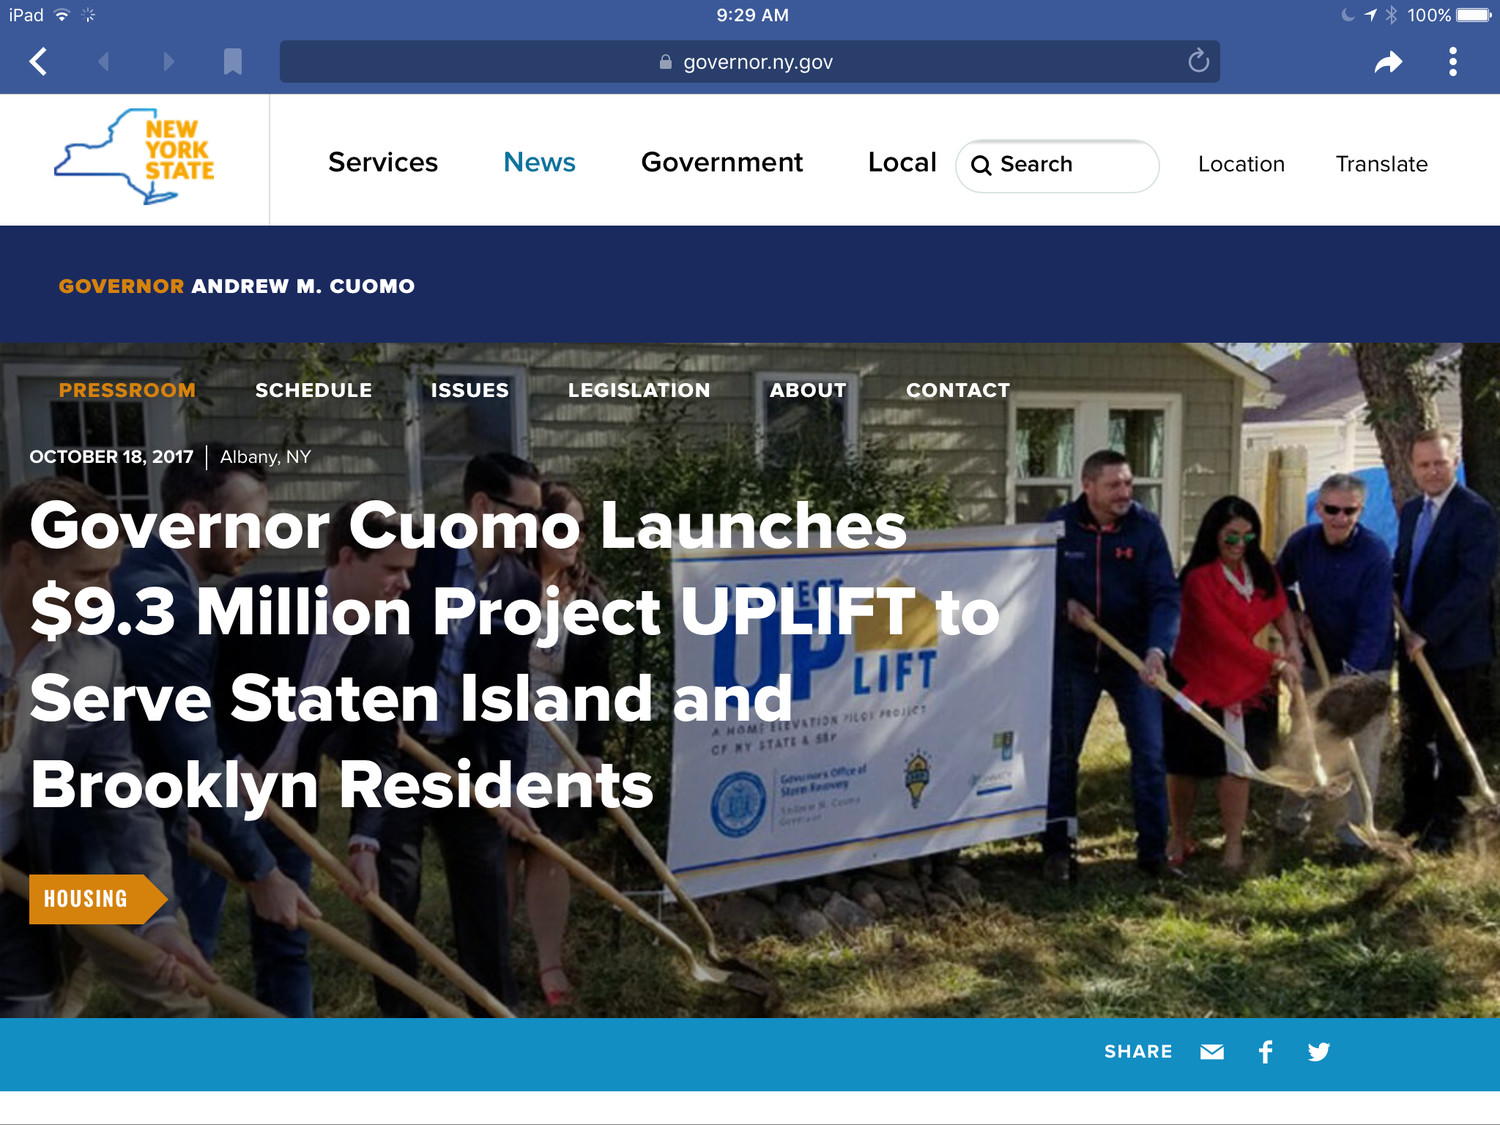 Cody Lawrence, fourth from right above, with Lisa Bova Hiatt, former executive director of the Governor's Office of Storm Recovery, in October 2017, advertised a $9.3 million home elevation pilot project called Uplift, which raised homes in Staten Island and Brooklyn to protect them from future flood damage.